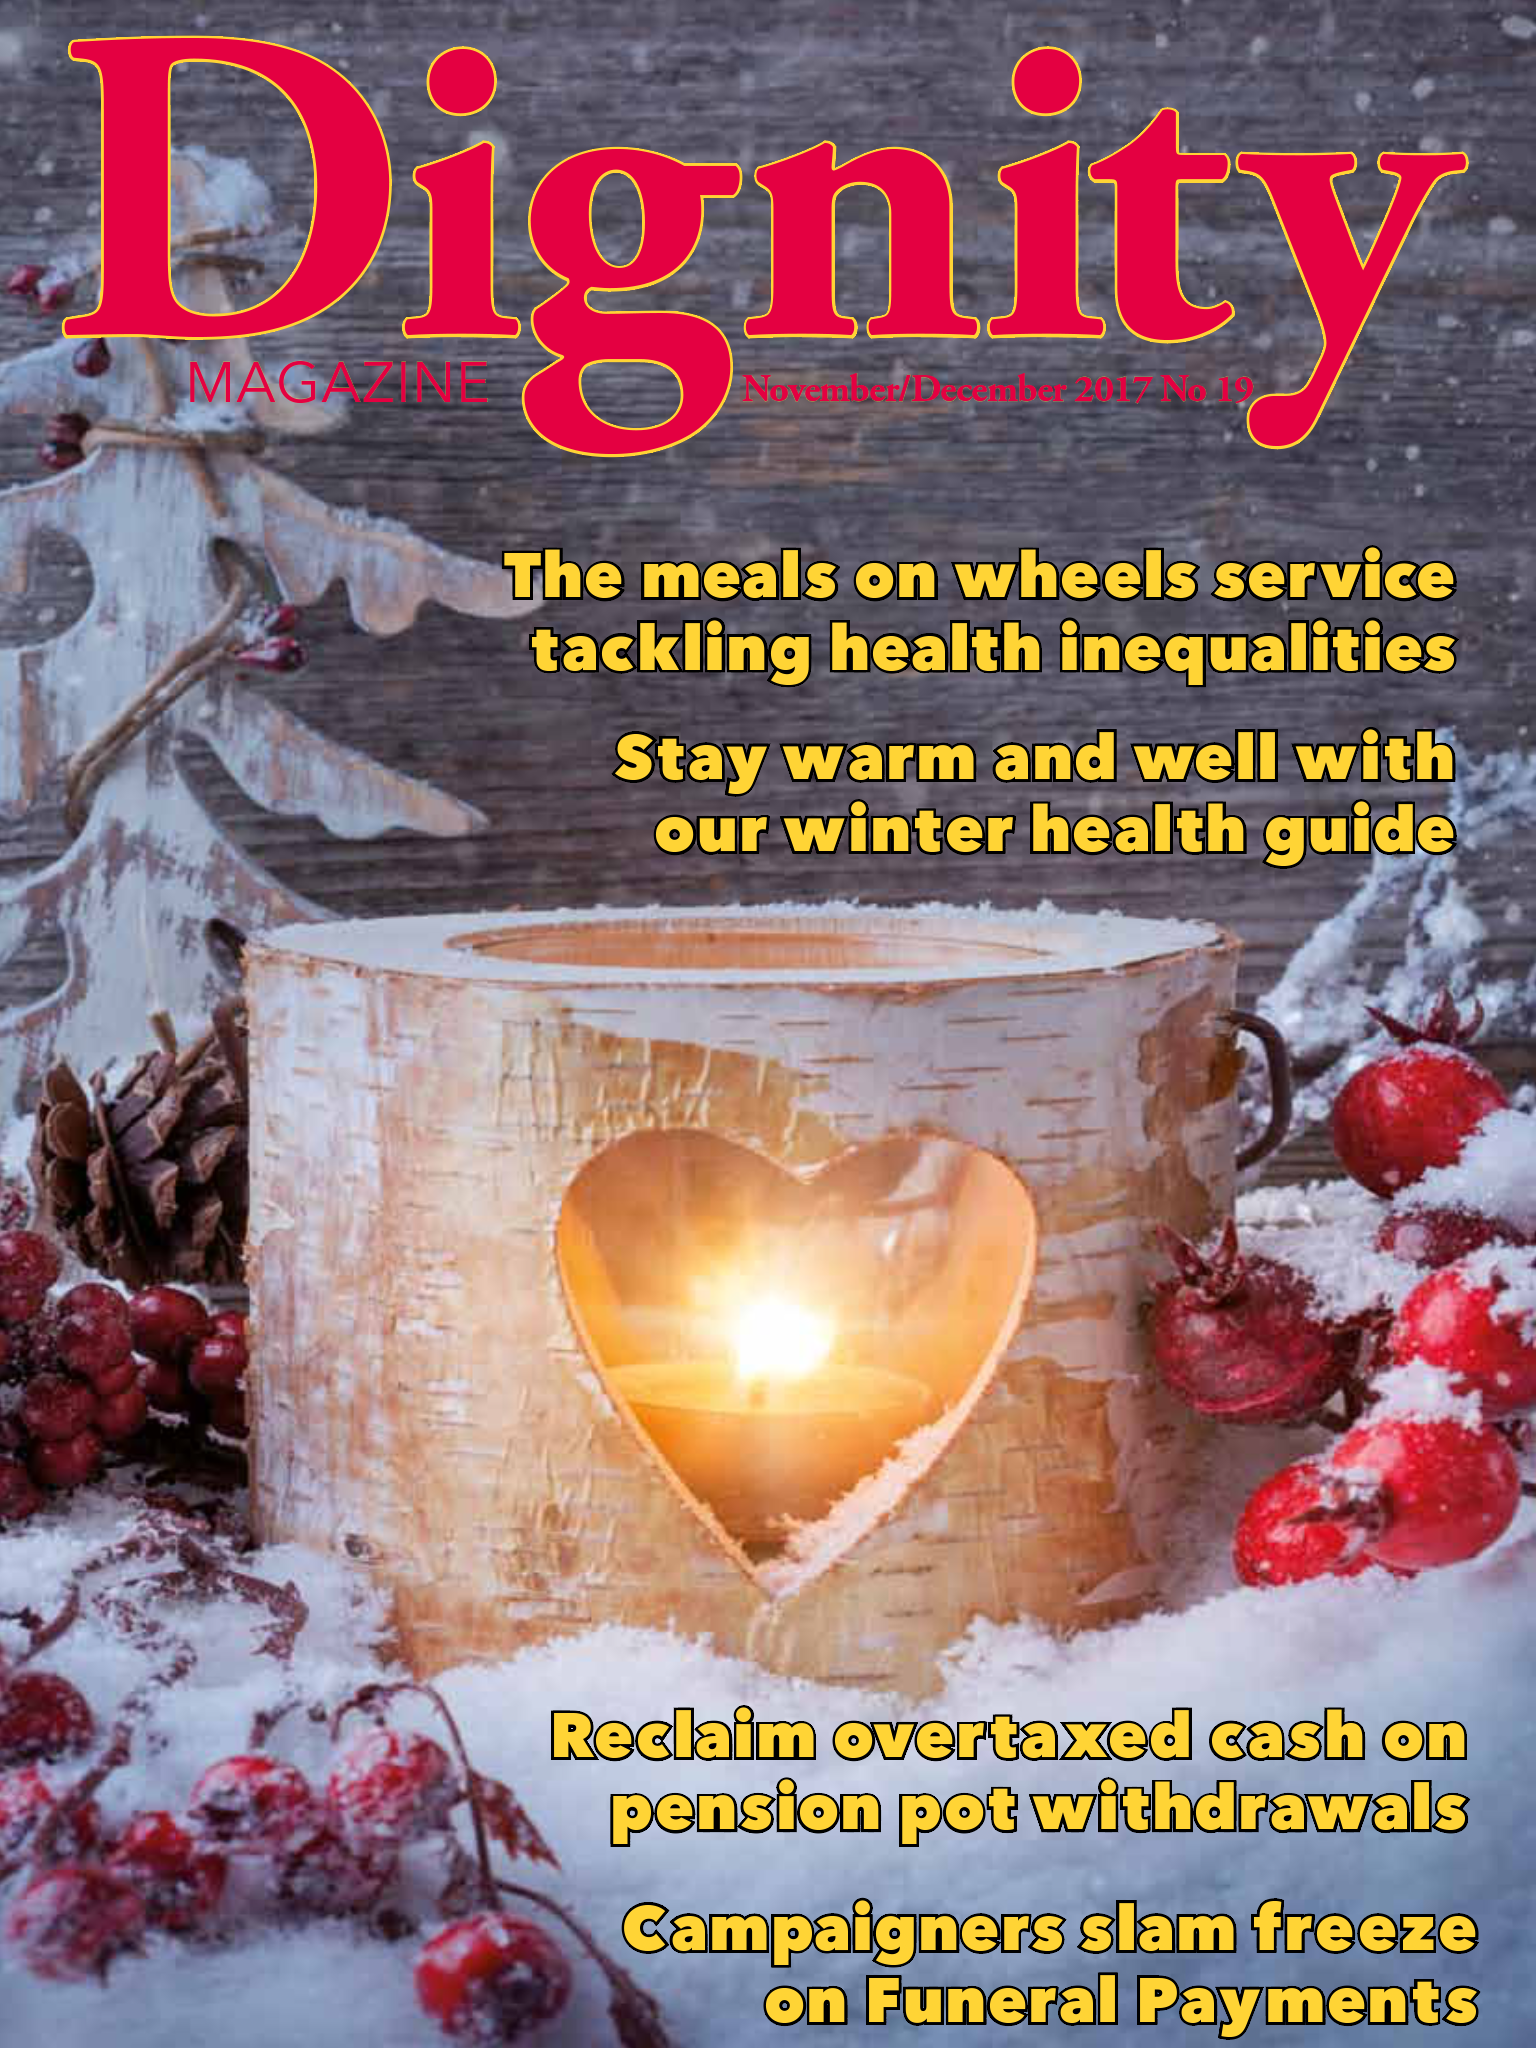 The holistic Meals on Wheels service